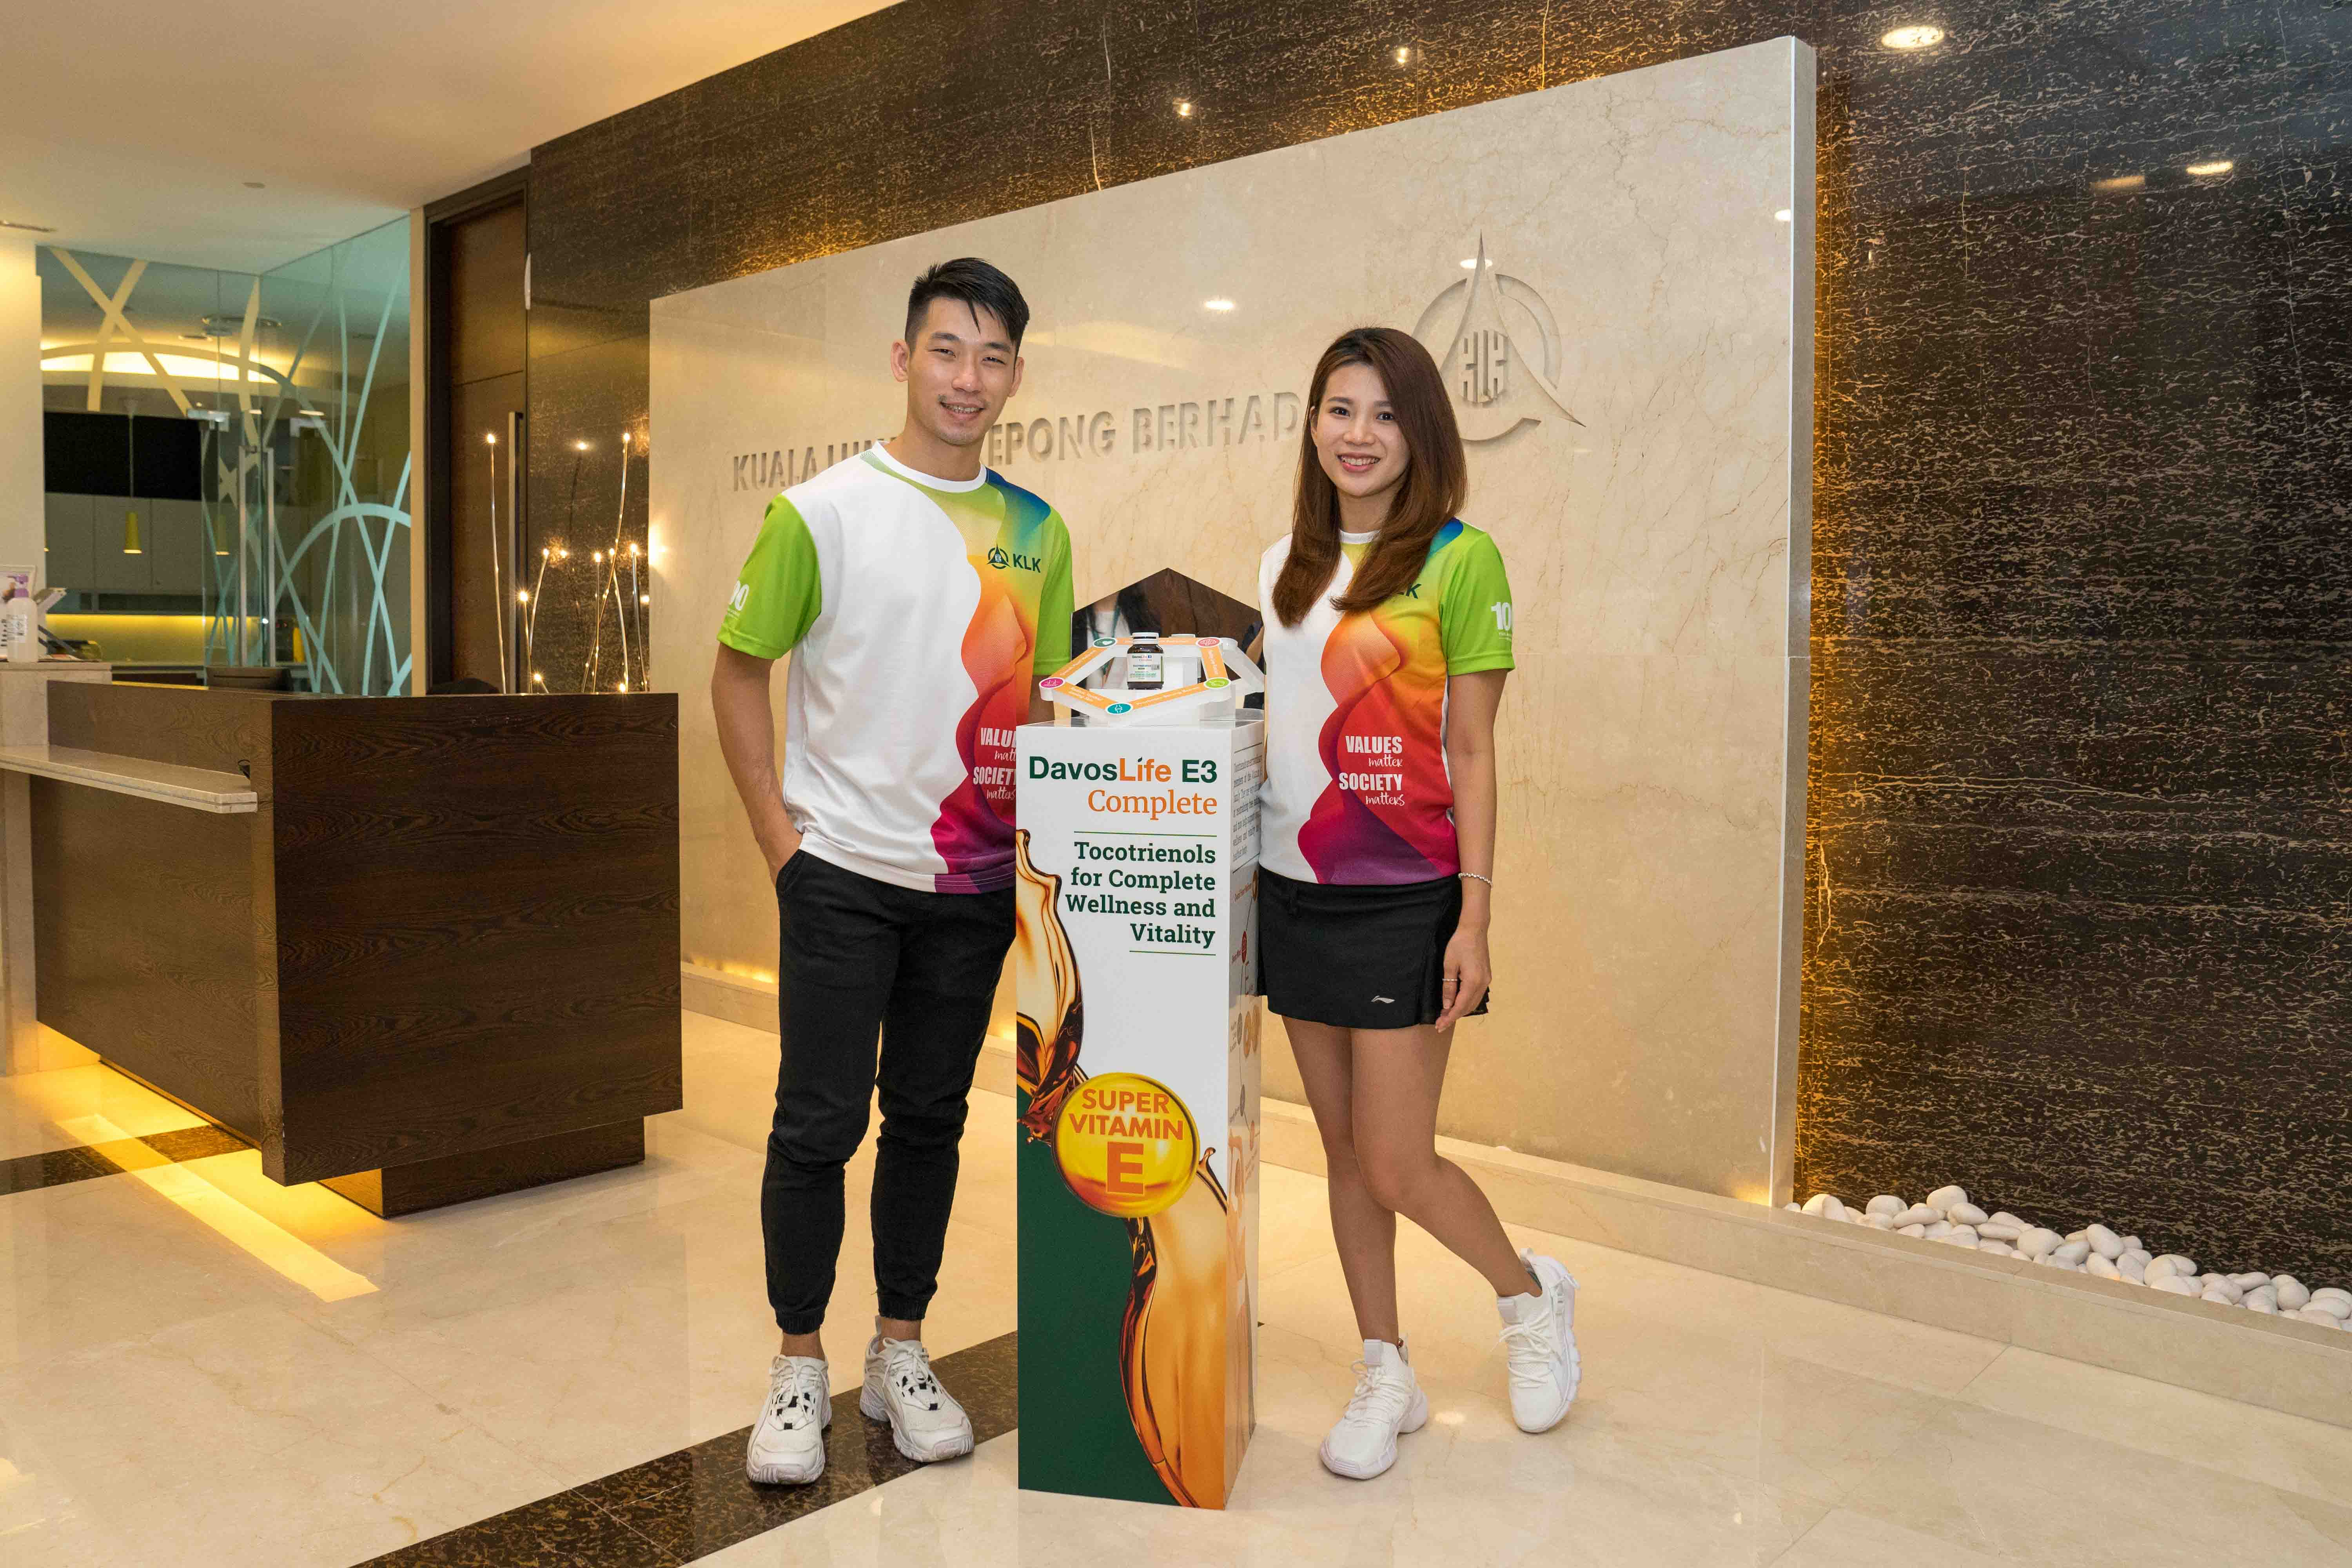 Peng Soon - Liu Ying is the new Brand Ambassadors for DavosLife E3 Complete Tocotrienols